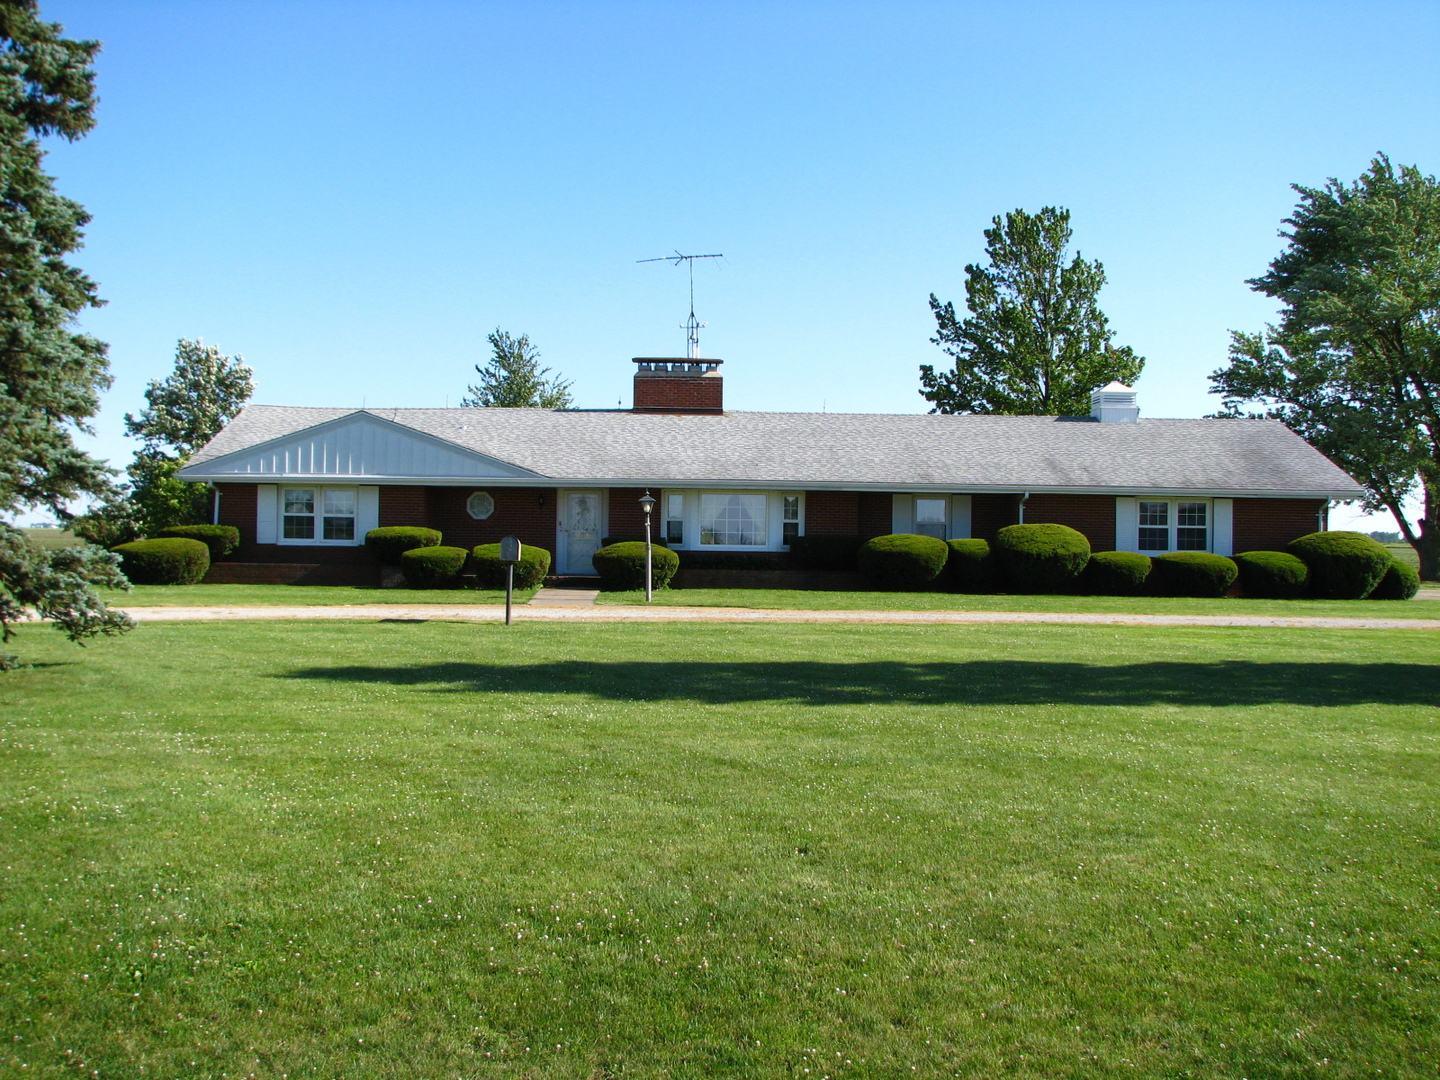 975 East County Road 600n, ARCOLA, Illinois, 61910